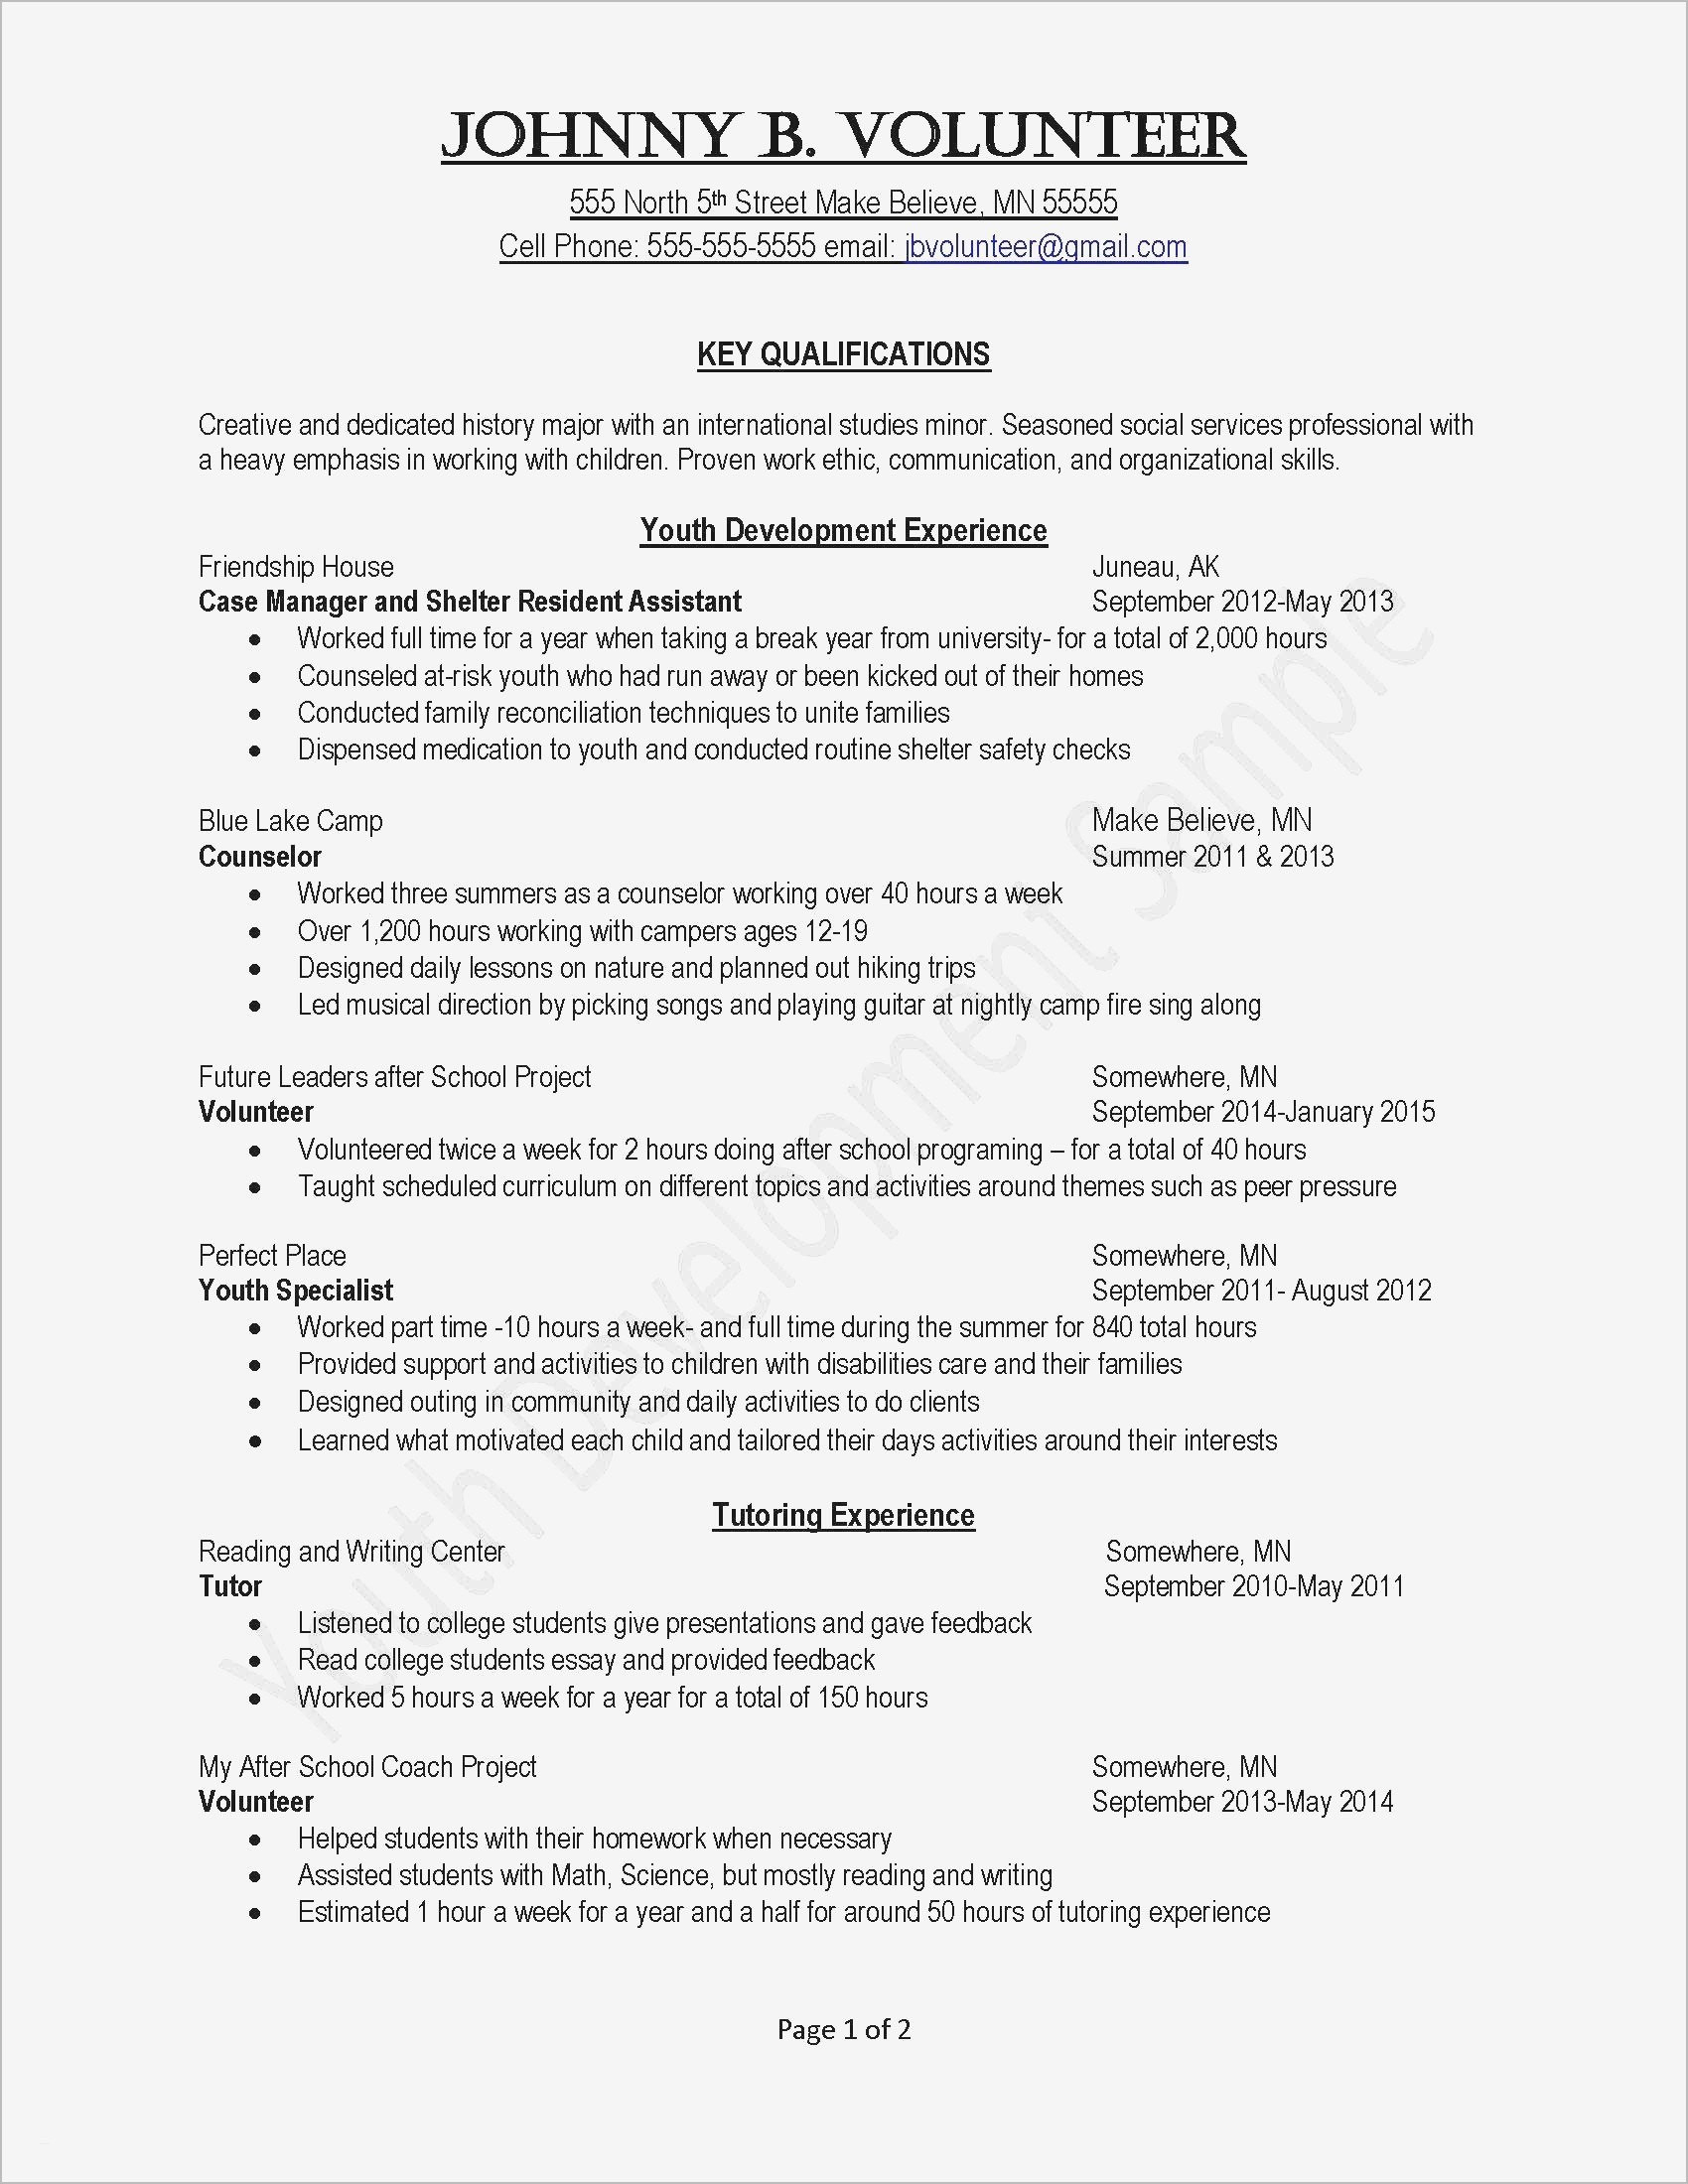 Marketing Letter Template Free - Free Resume Website Template Valid Job Fer Letter Template Us Copy